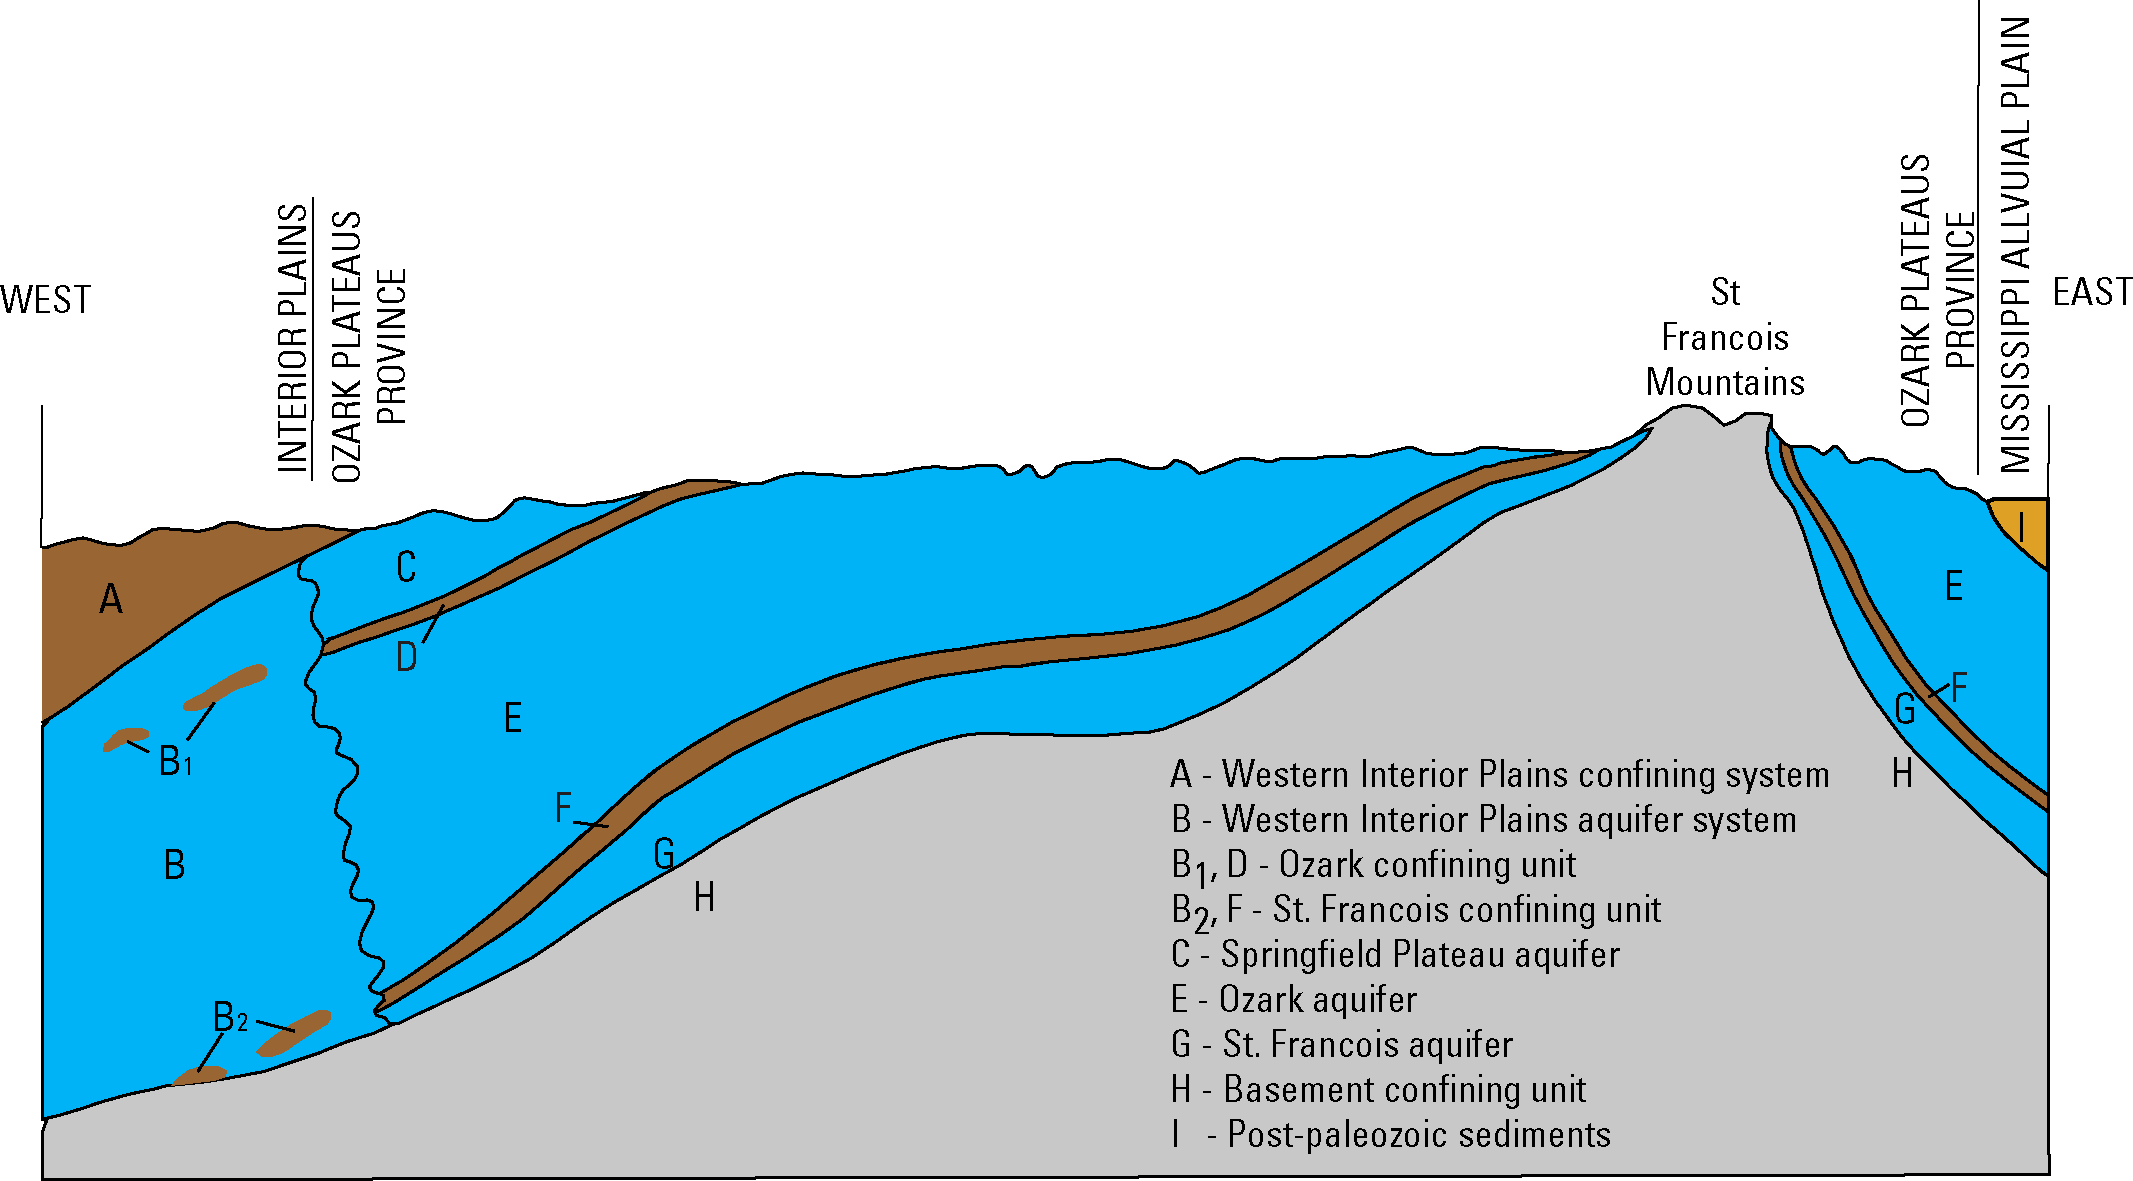 How Does Groundwater Enter And Move Through The Ozarks